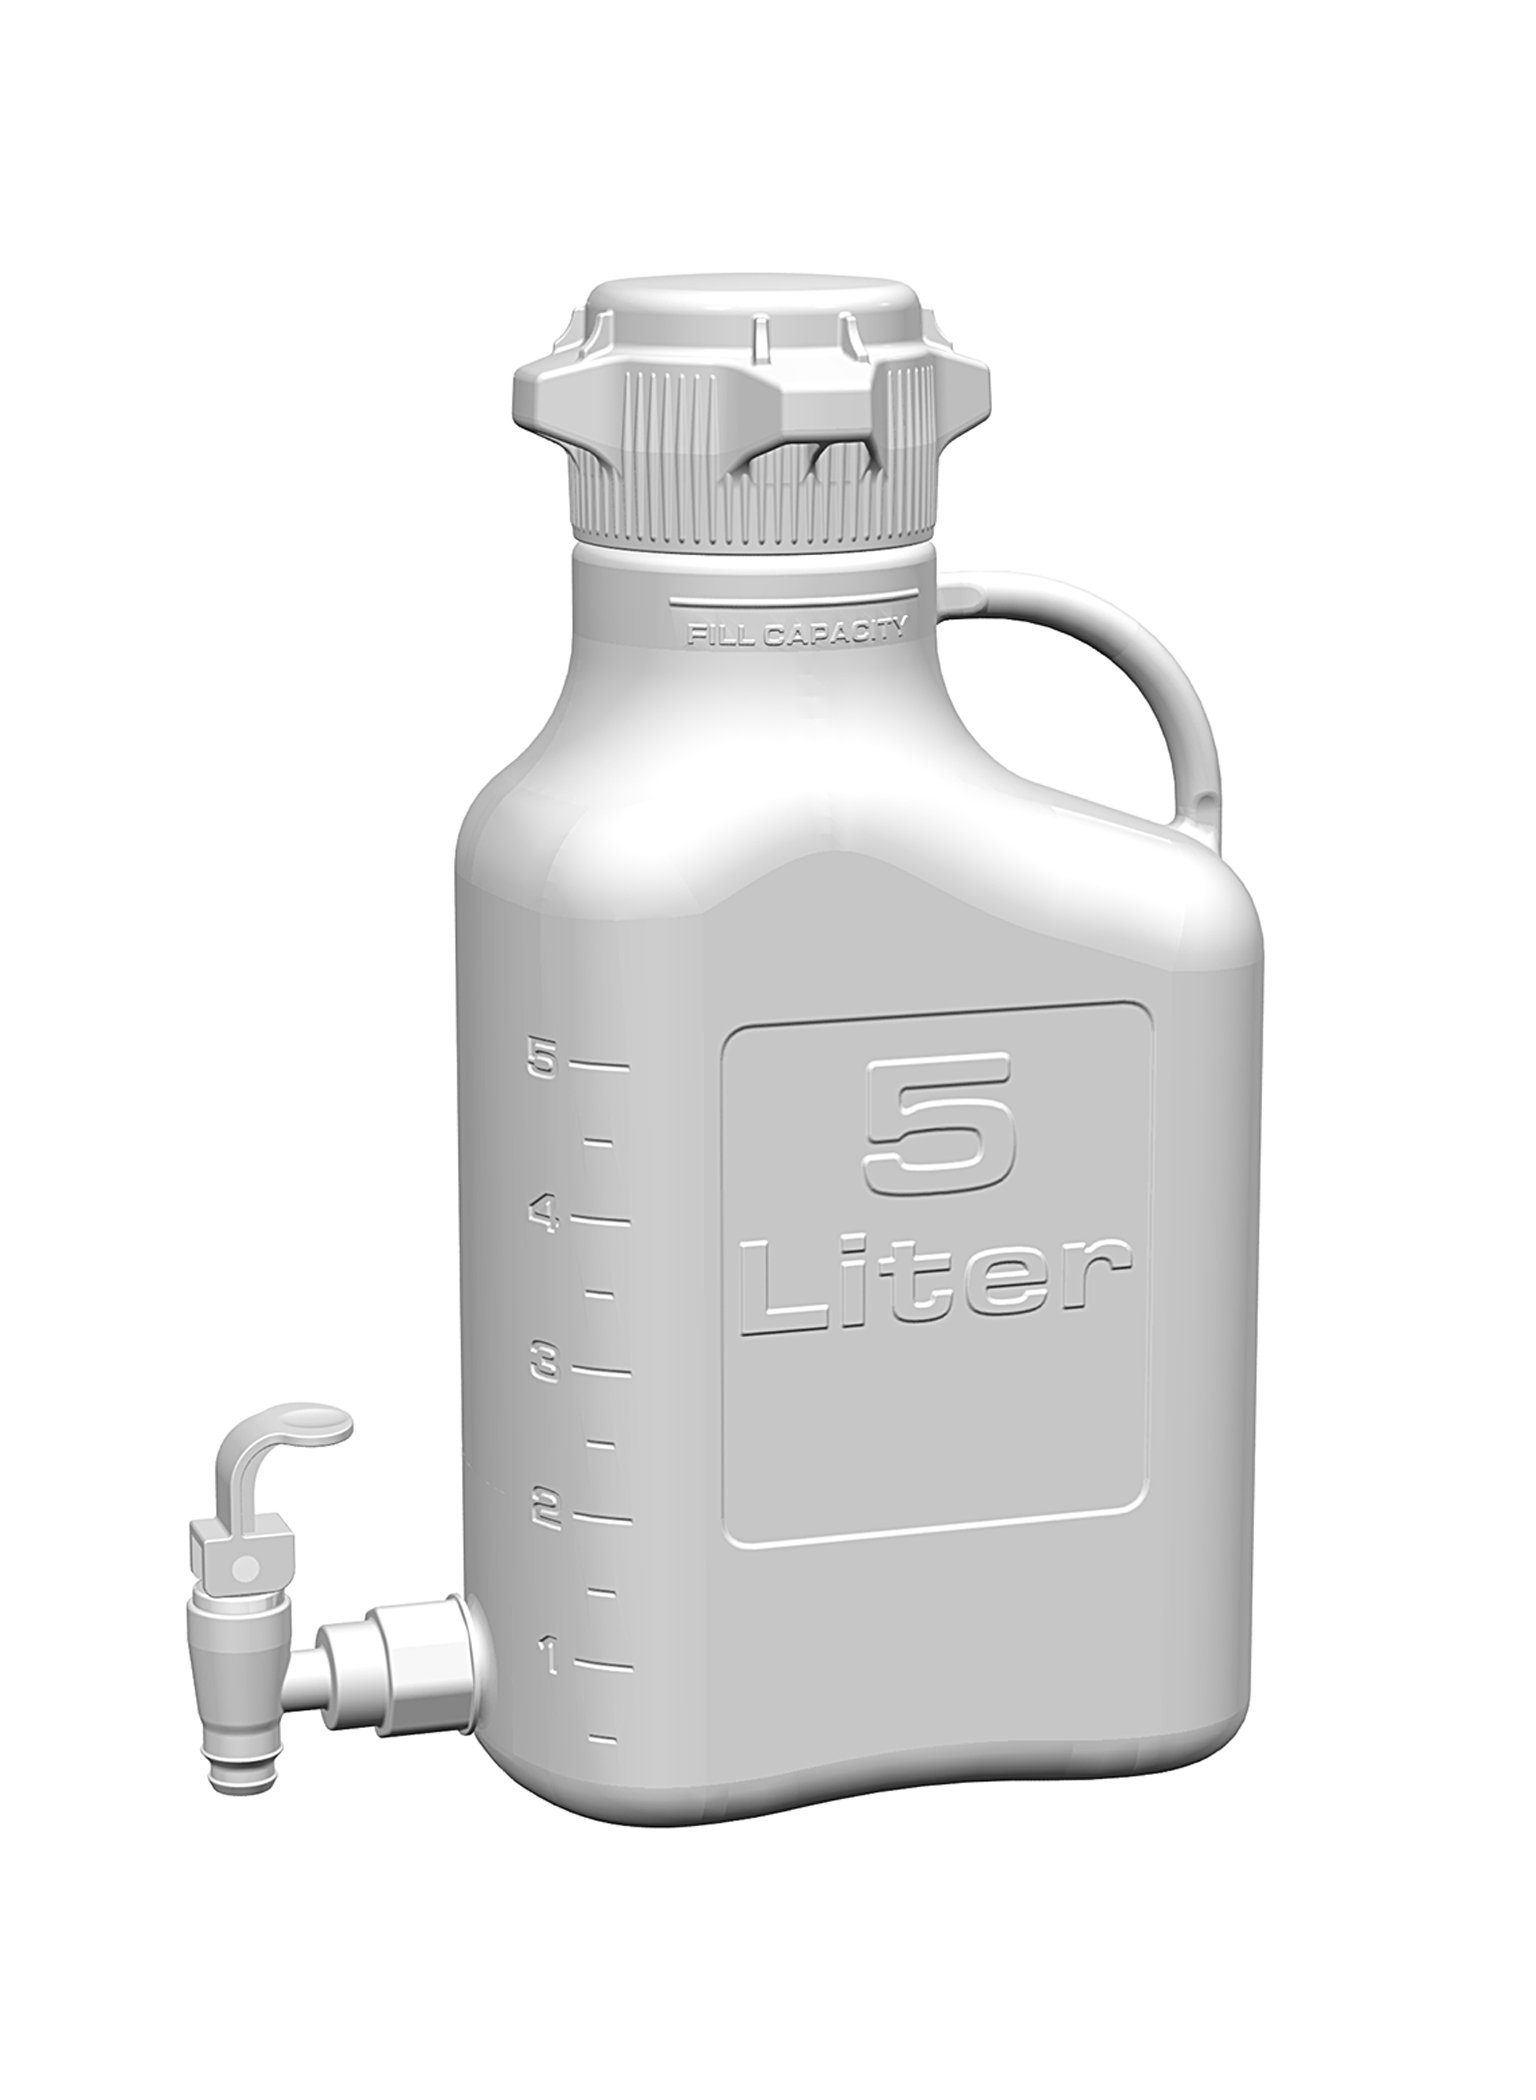 EZgrip 5L (1 Gal) HDPE Space Saving Carboy with Leakproof Spigot, 83mm (83B) VersaCap and 6.9L Max Capacity